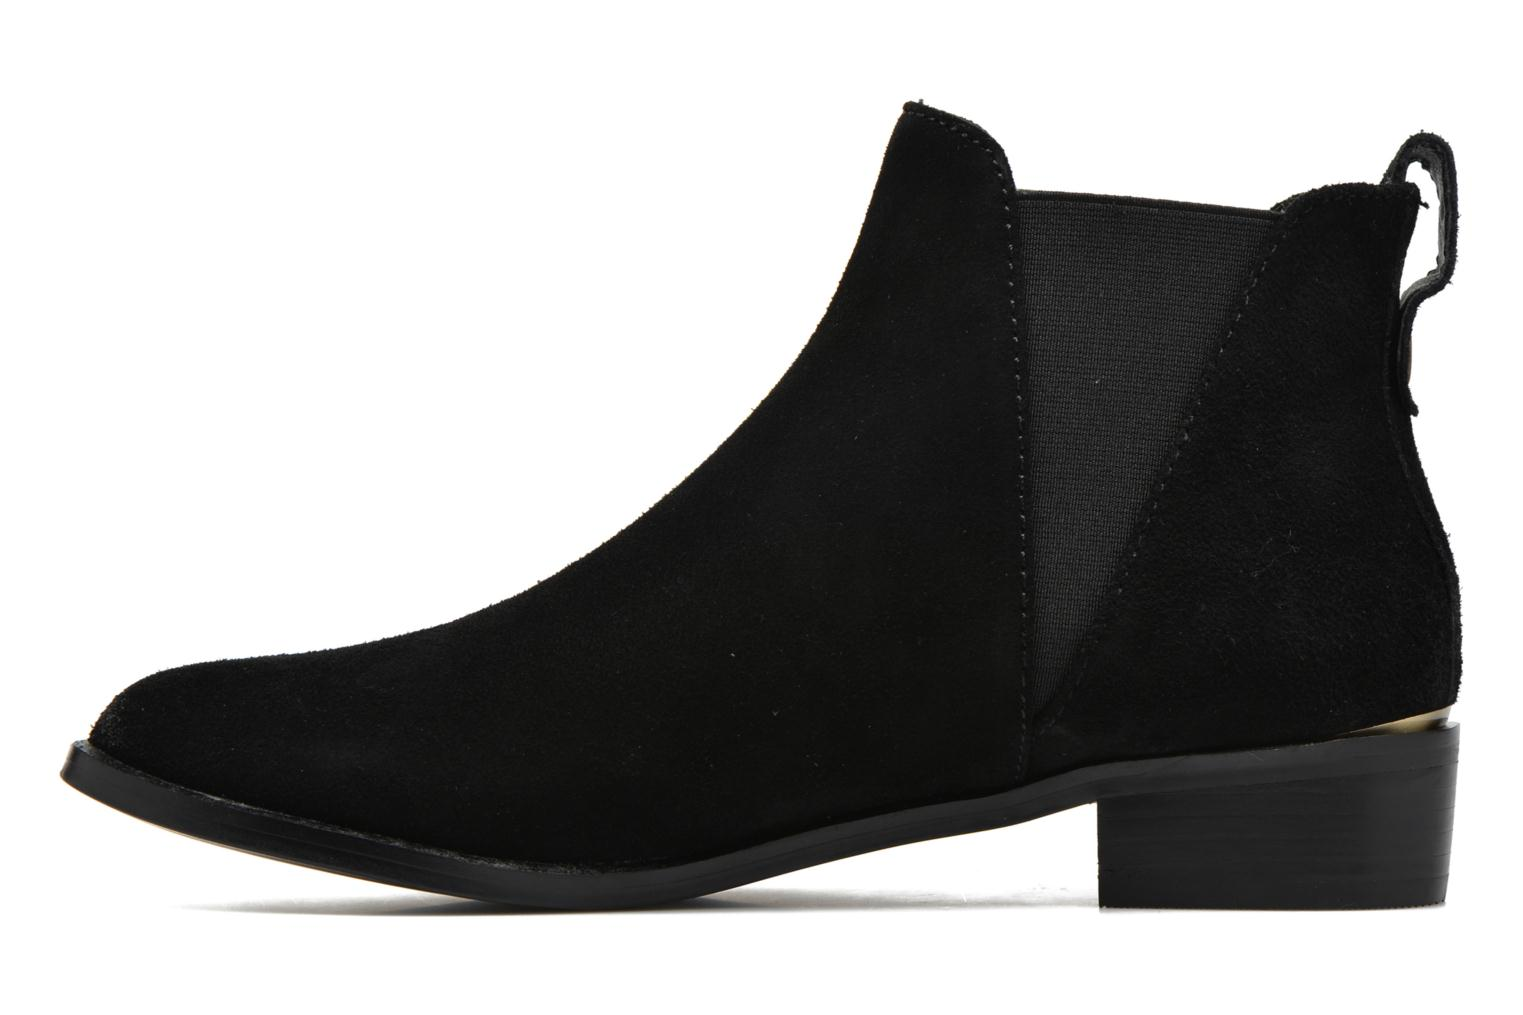 Nickell 01001 Black Suede